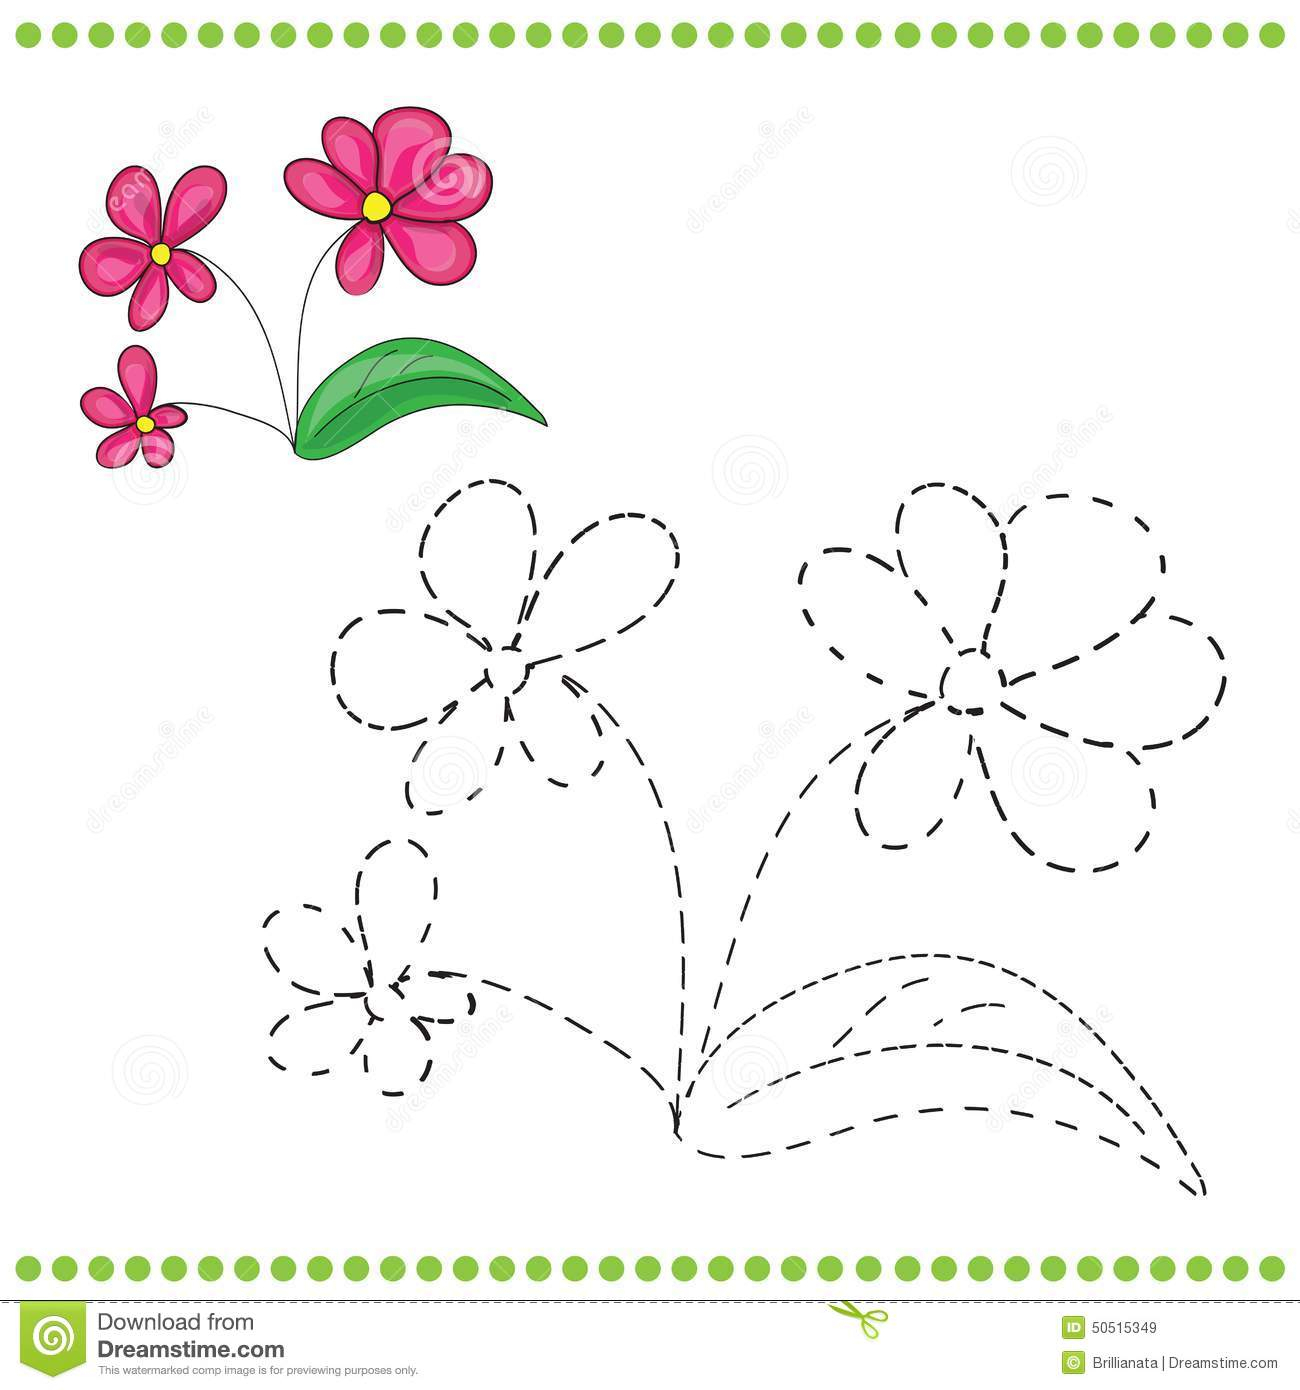 Connect The Dots Flower Flower Easy Dot To Dot Coloring Pages For.